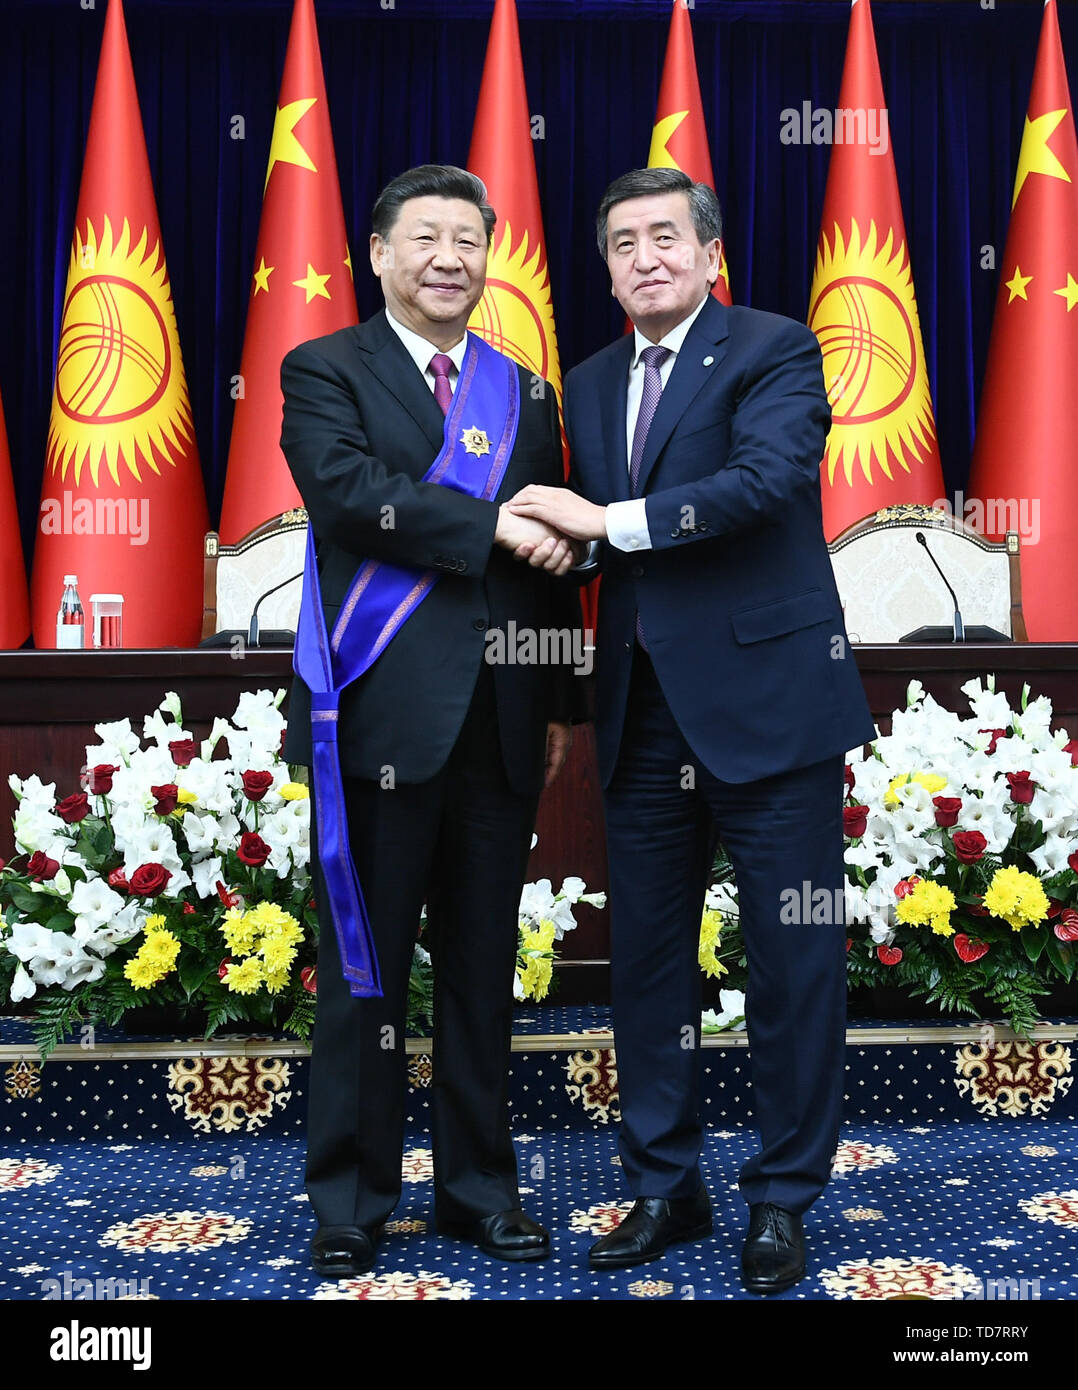 Bishkek, Kyrgyzstan. 13th June, 2019. Chinese President Xi Jinping is awarded the Manas Order of the First Degree, the highest national prize of Kyrgyzstan, by his Kyrgyz counterpart Sooronbay Jeenbekov in Bishkek, Kyrgyzstan, June 13, 2019. Credit: Xie Huanchi/Xinhua/Alamy Live News - Stock Image